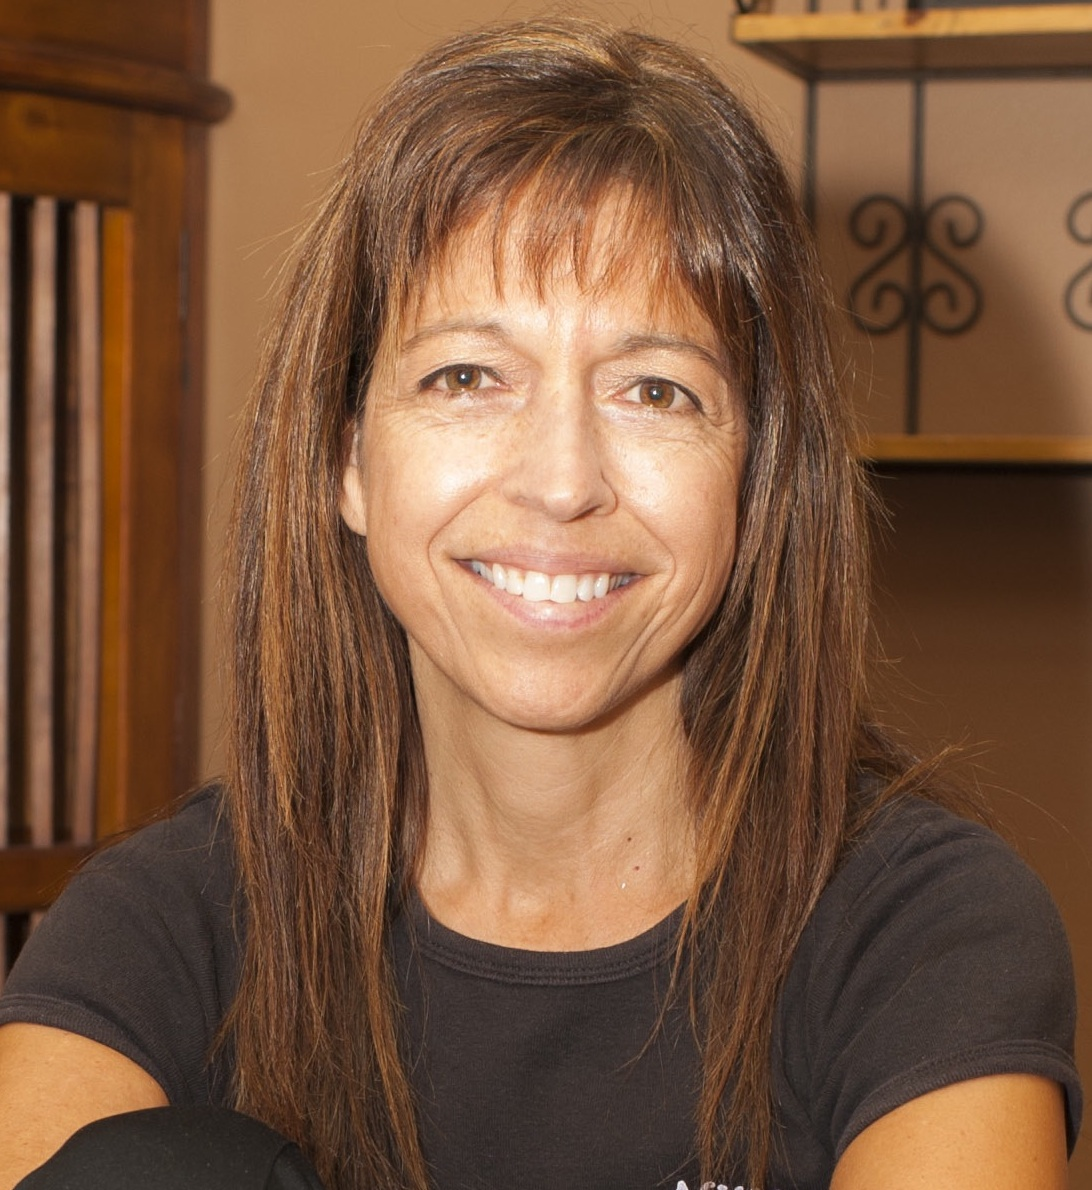 Betty Dietrich   Licensed Massage Therapist and Member of AMTA since 1999